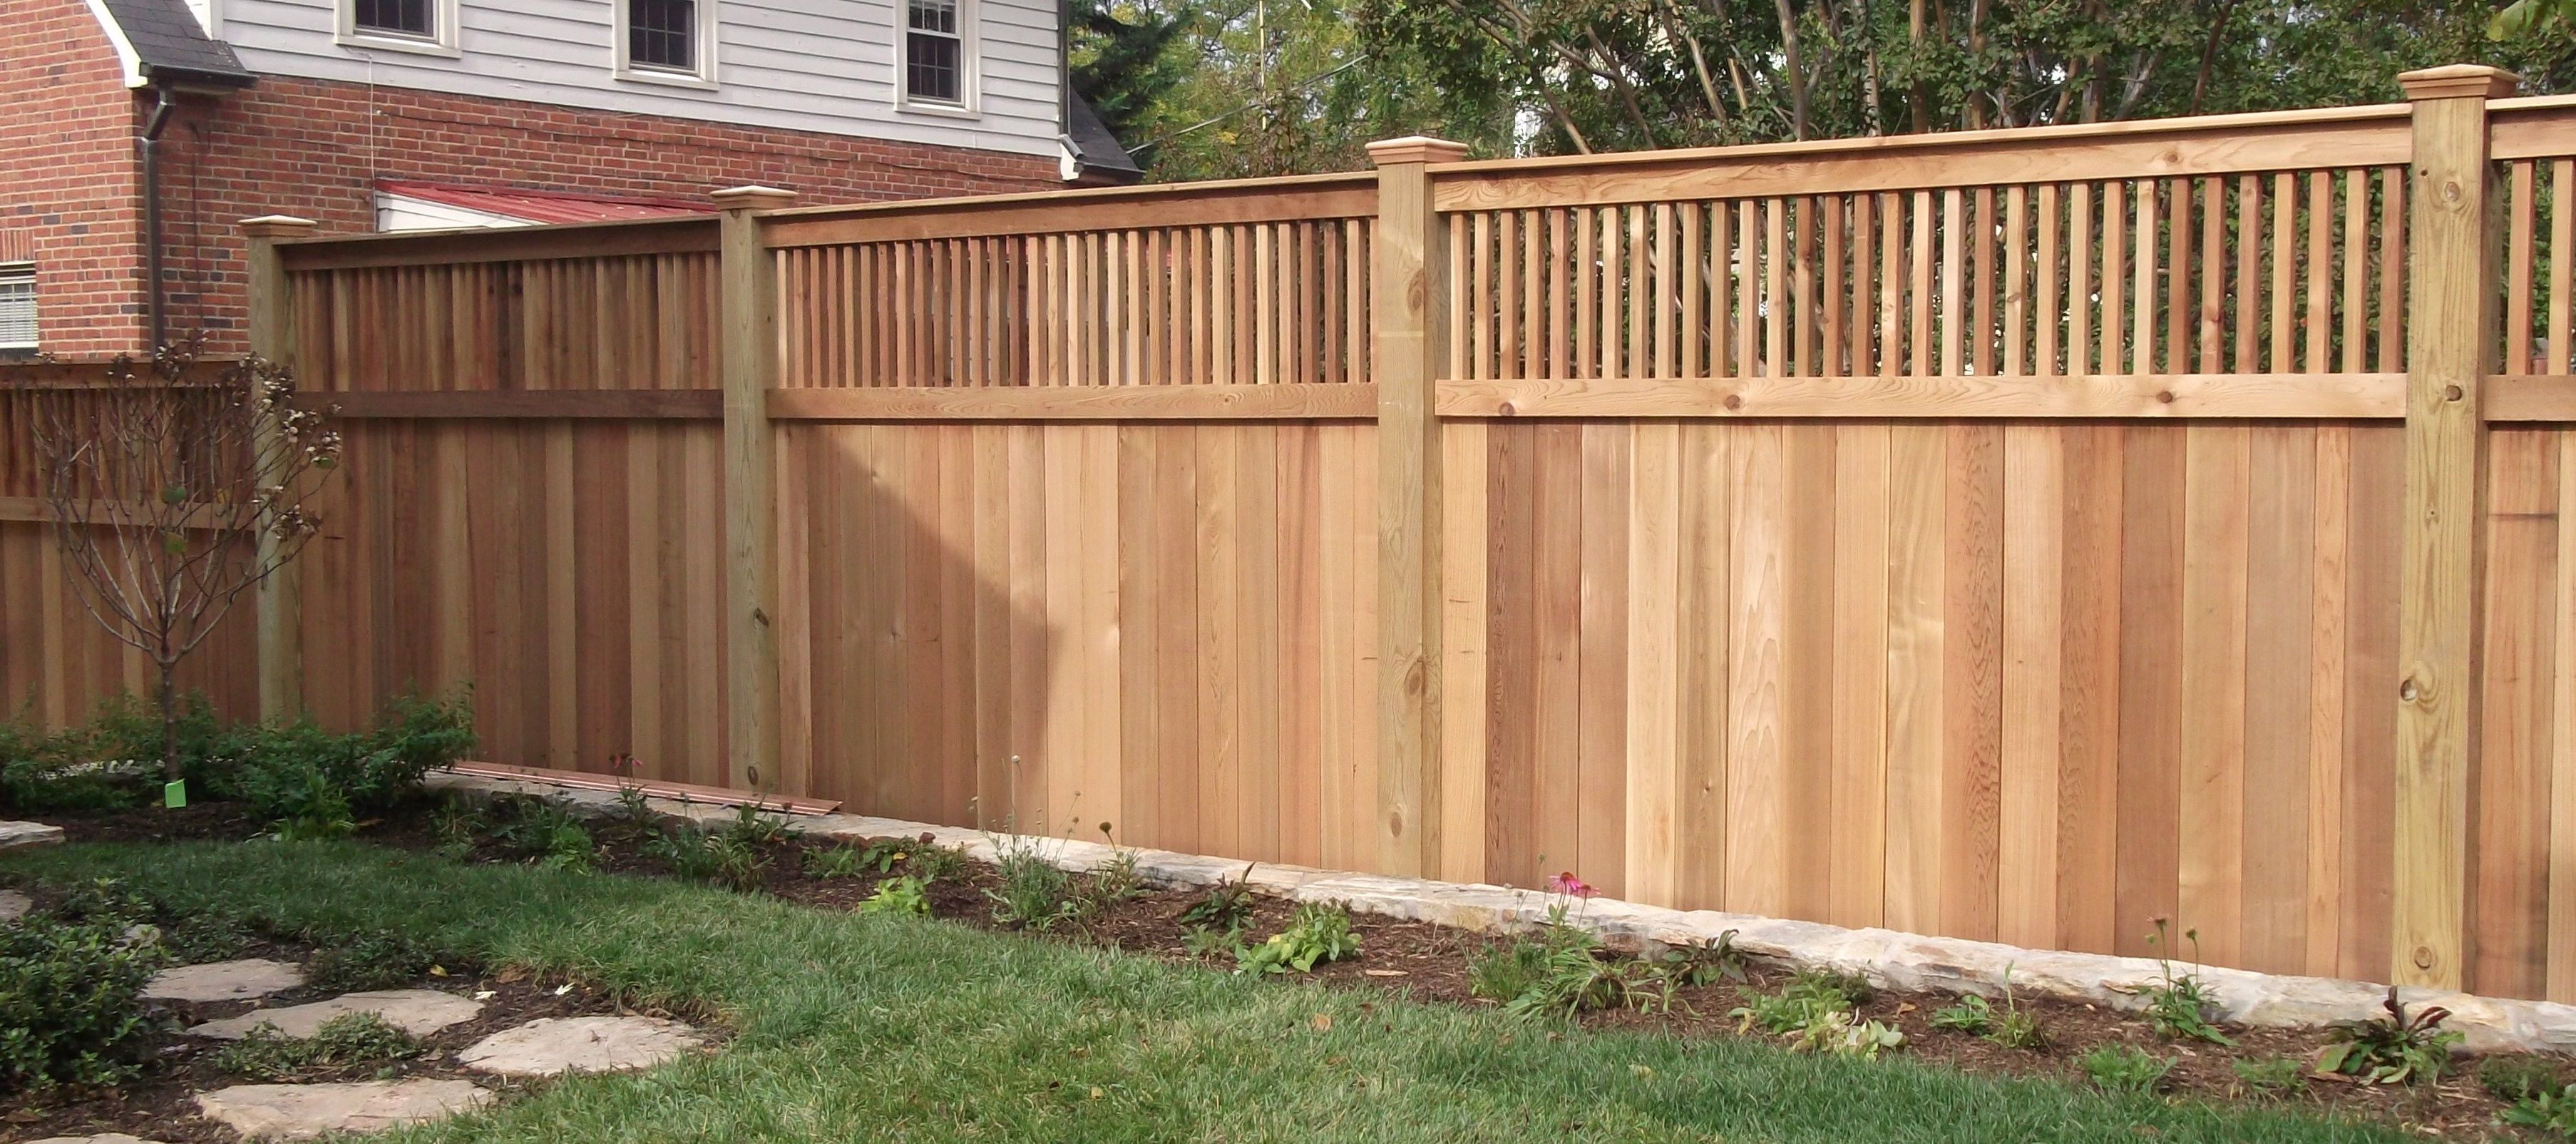 Fence Design Ideas wood fence design ideas Cool Fence Ideas For Backyard Garden Fencing Designs On Wire Garden Fence Design Ideas Home Design